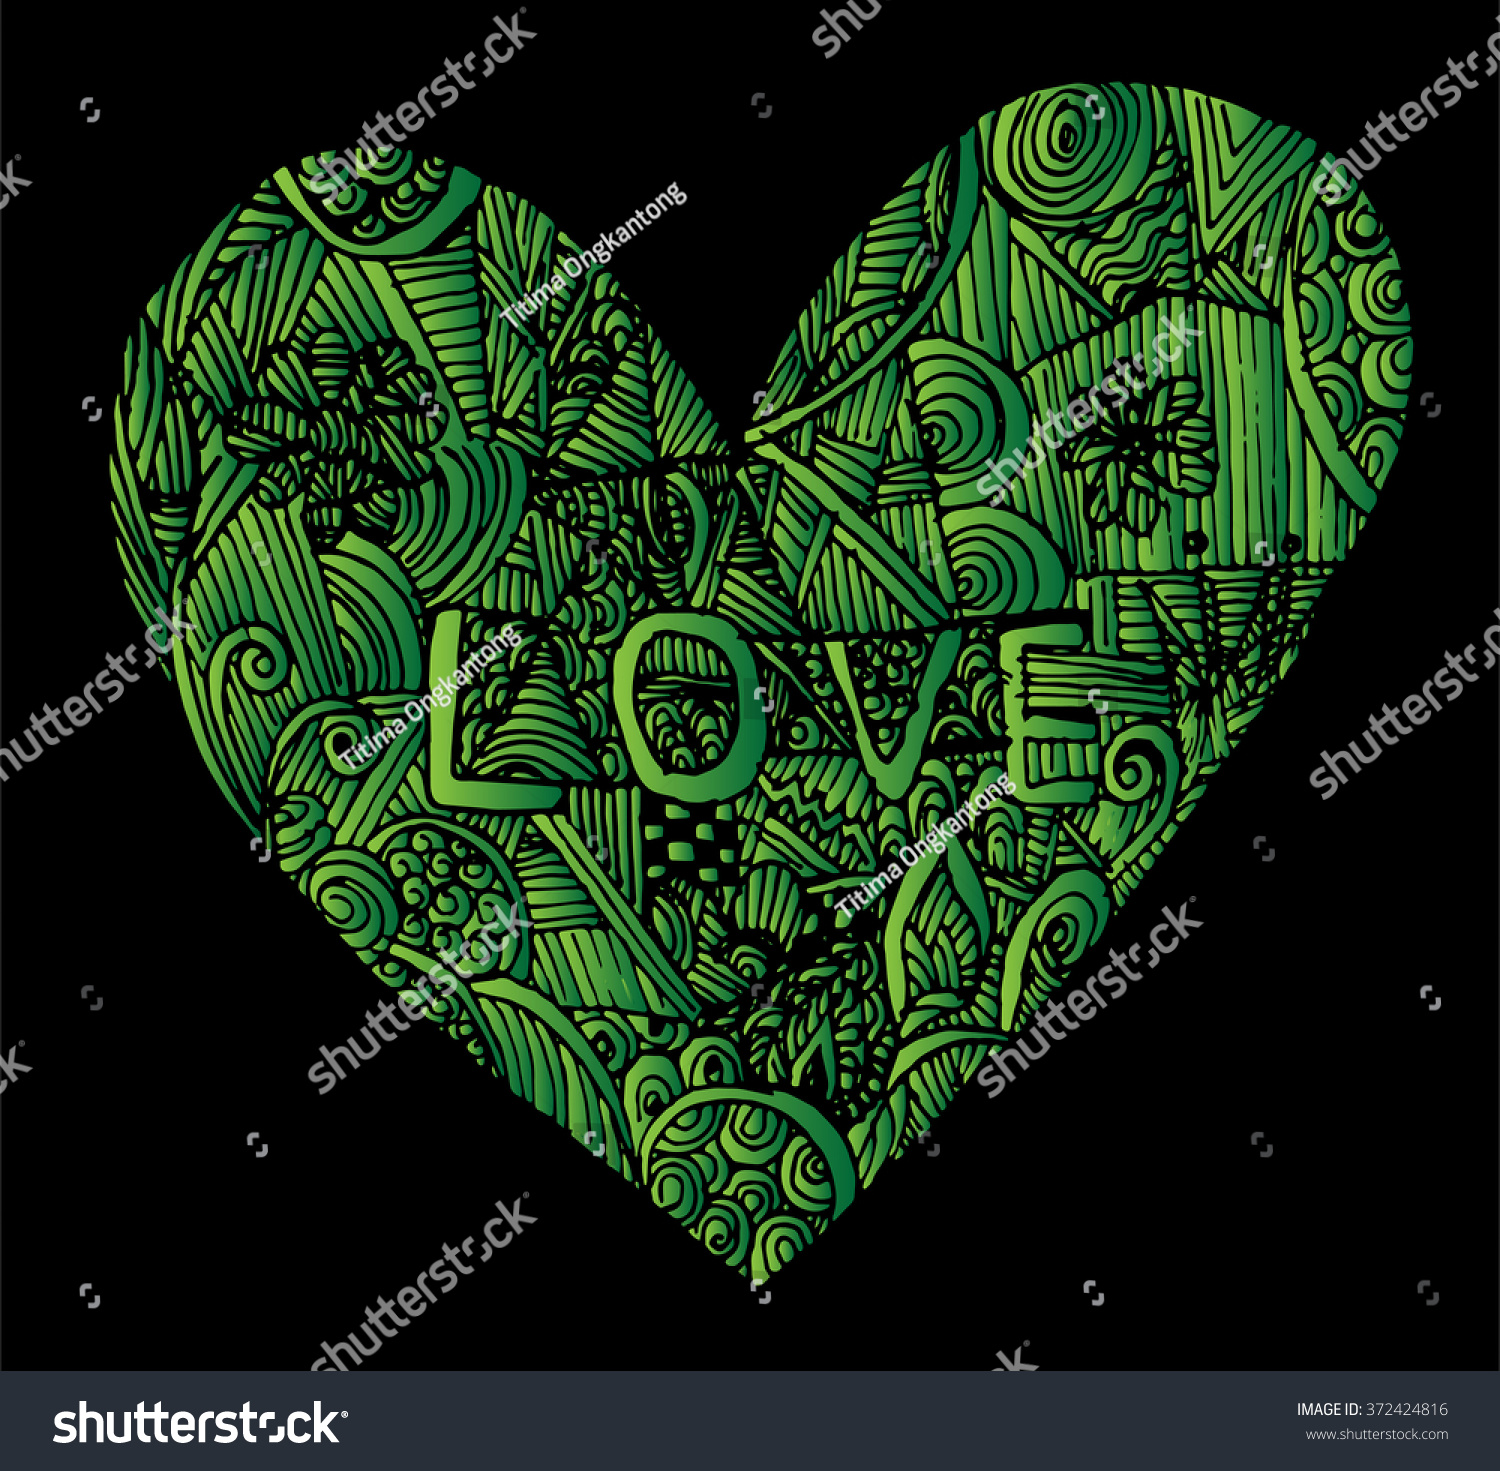 Coloring Page Heart St Valentines Day Stock Photo (Photo, Vector ...